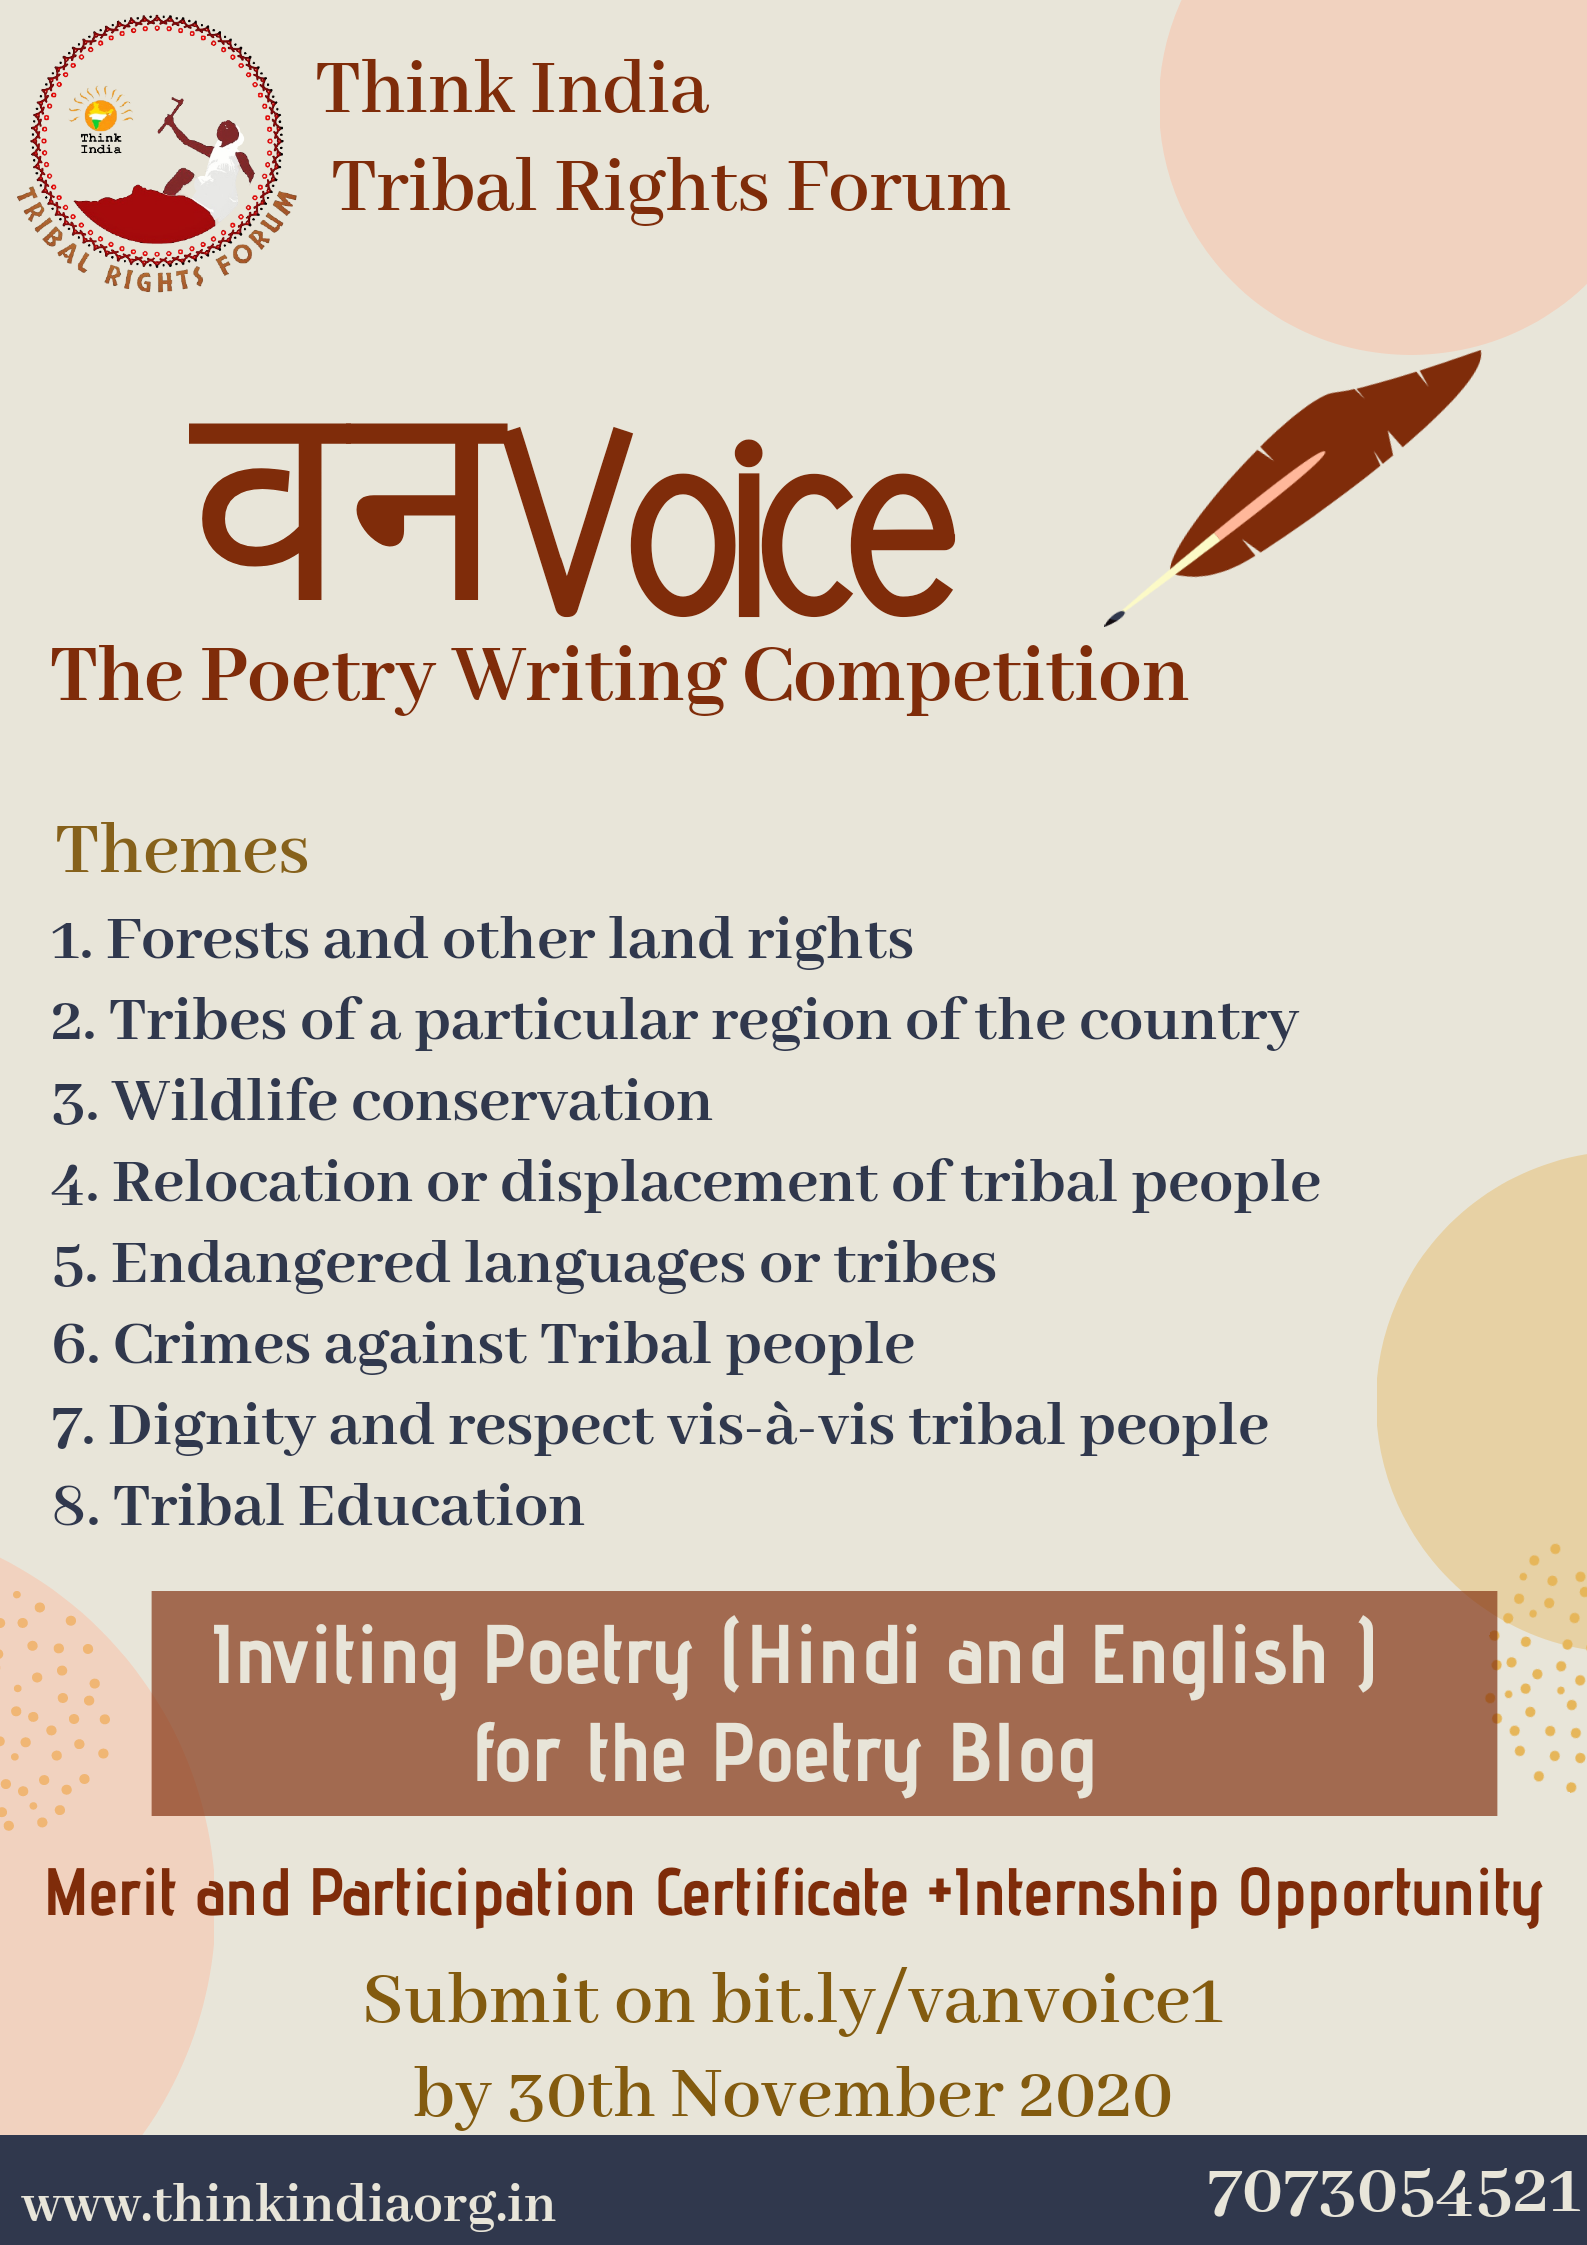 The Poetry Writing Competition